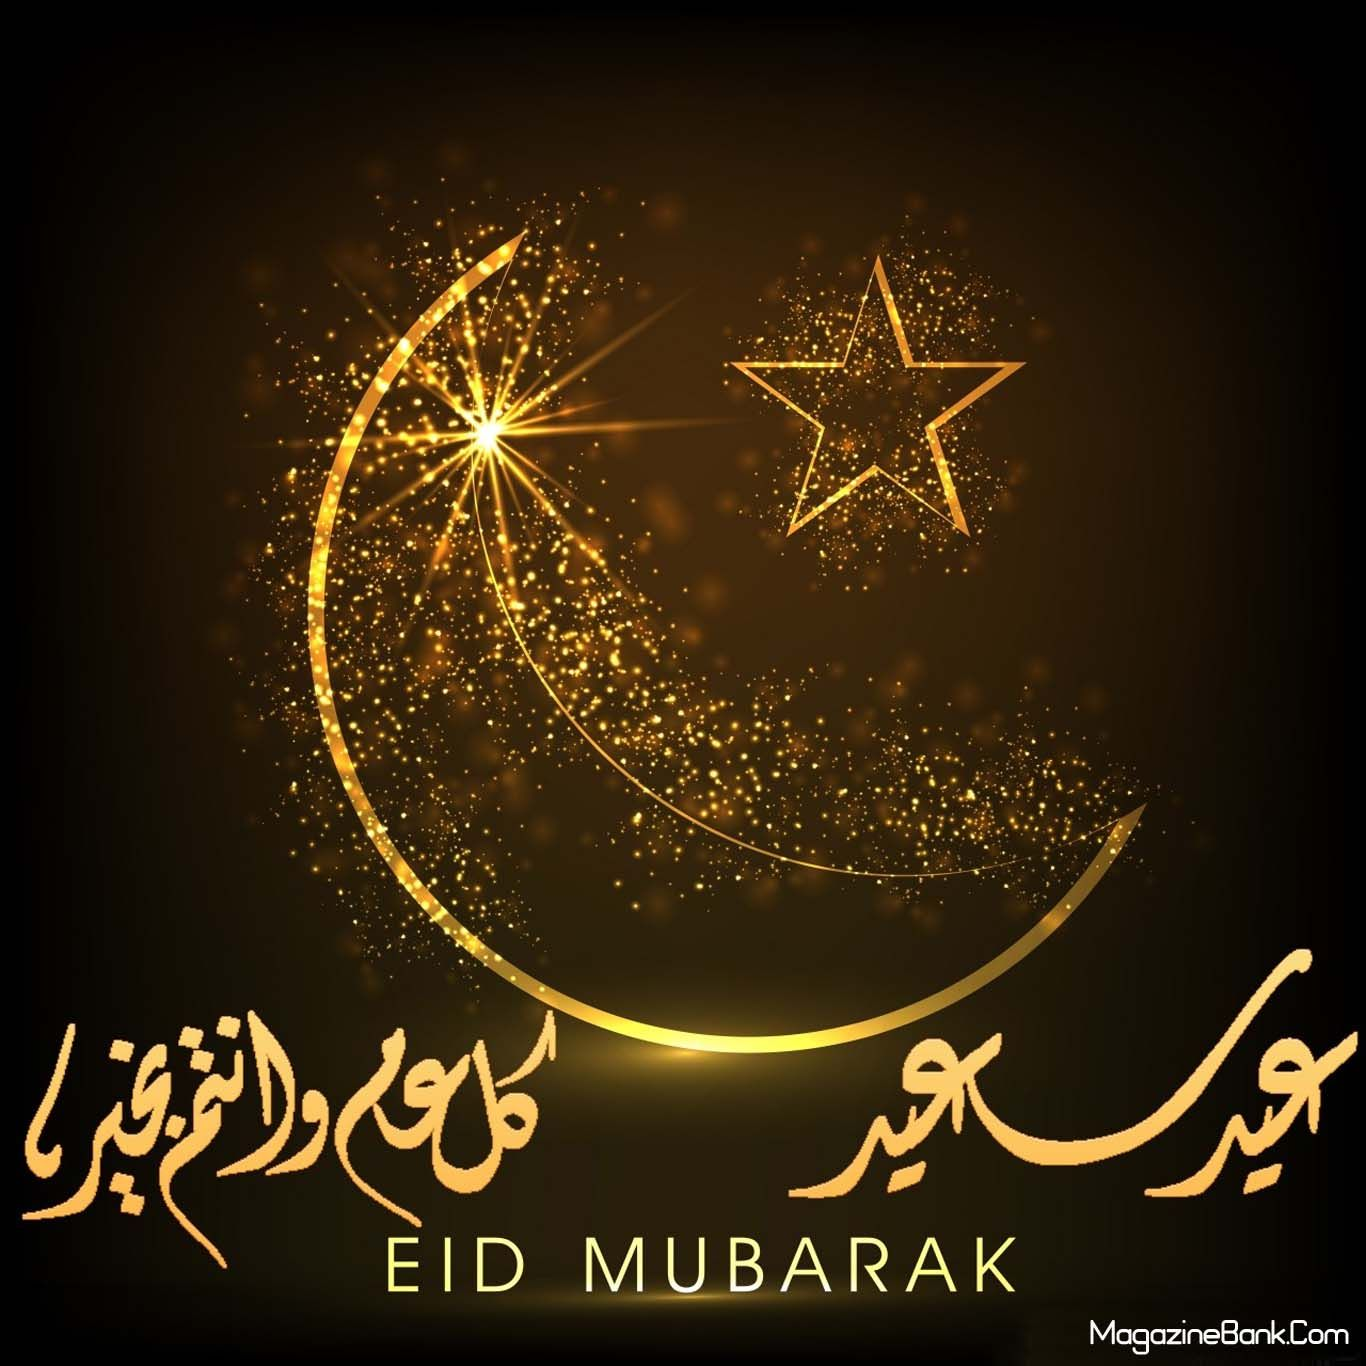 Eid mubarak 2015 images and hd wallpapers free download sms wishes eid mubarak 2015 images and hd wallpapers free download sms wishes poetry m4hsunfo